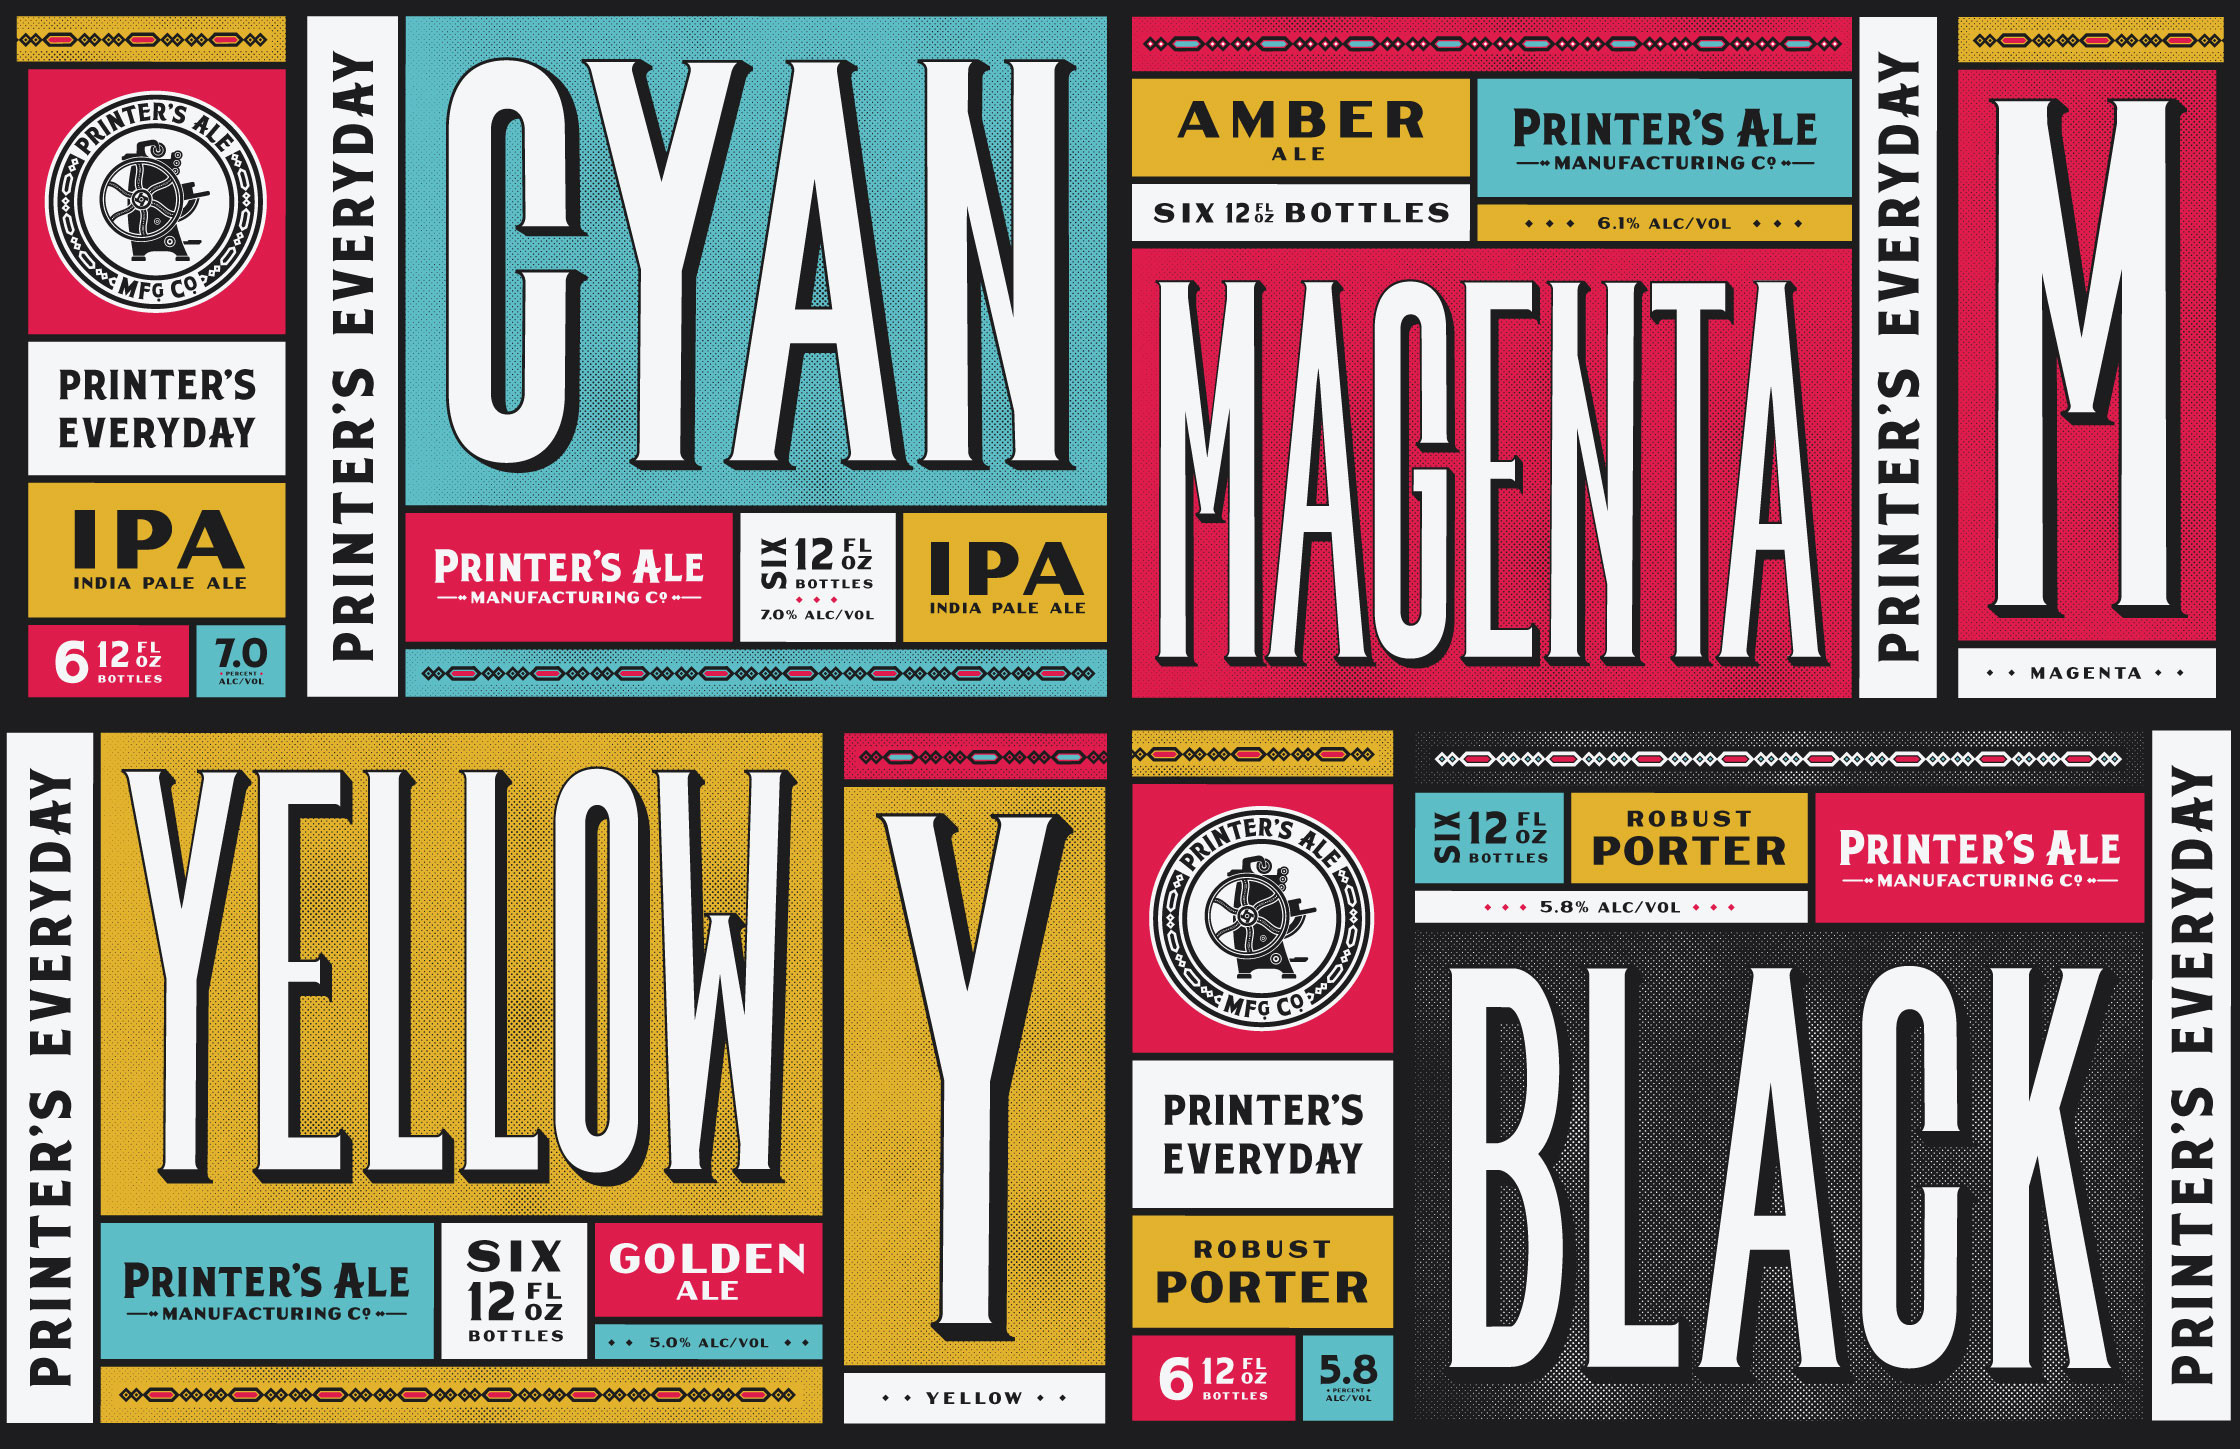 Beer & Branding: Printer's Ale Manufacturing Co.